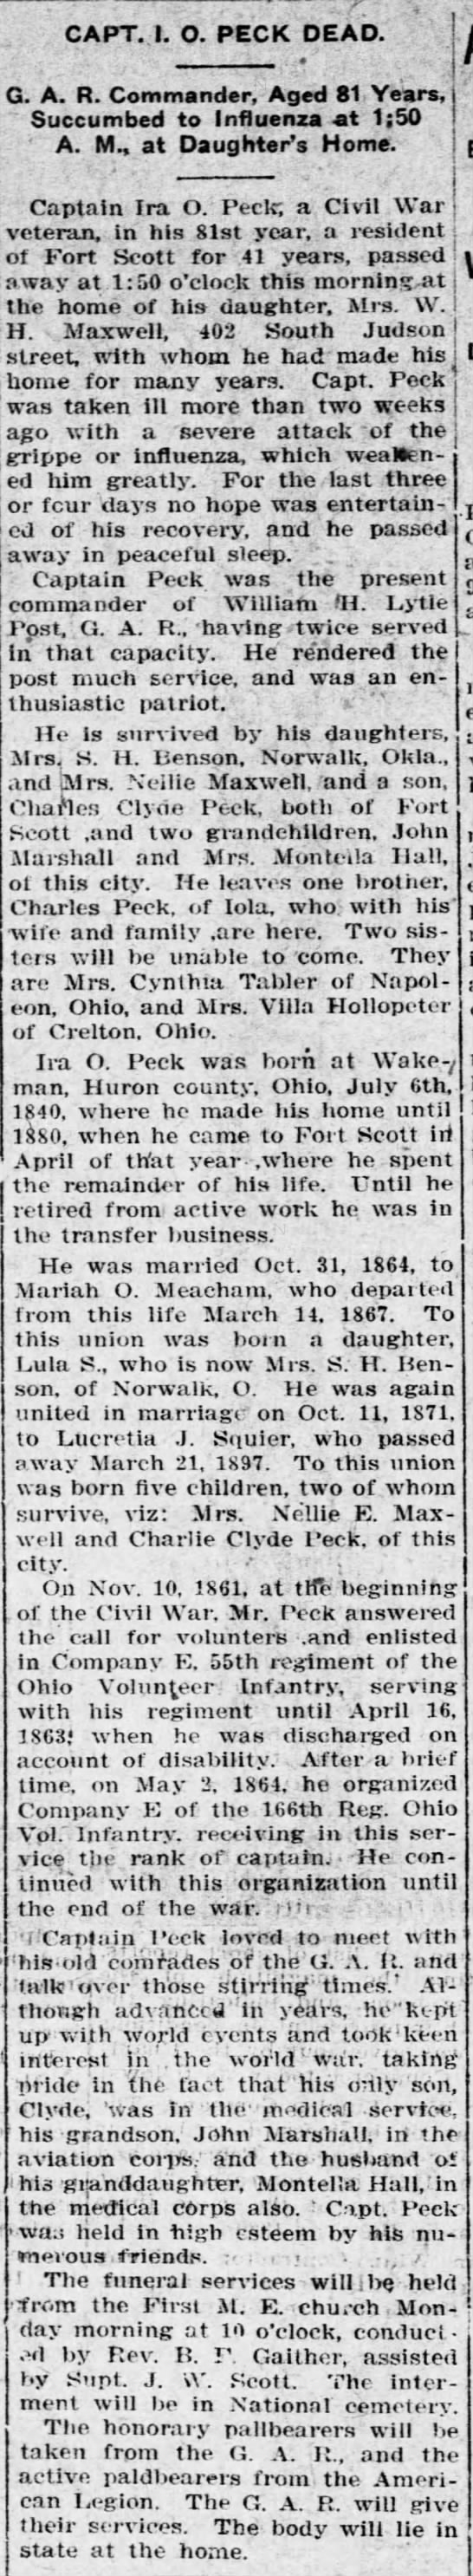 Peck, Ira O Obituary and bio. Ft Scott Daily Monitor. 16 Apr, 1921 - CAPT. 1. O. PECK DEAD. G. A. R. Commander, Aged...